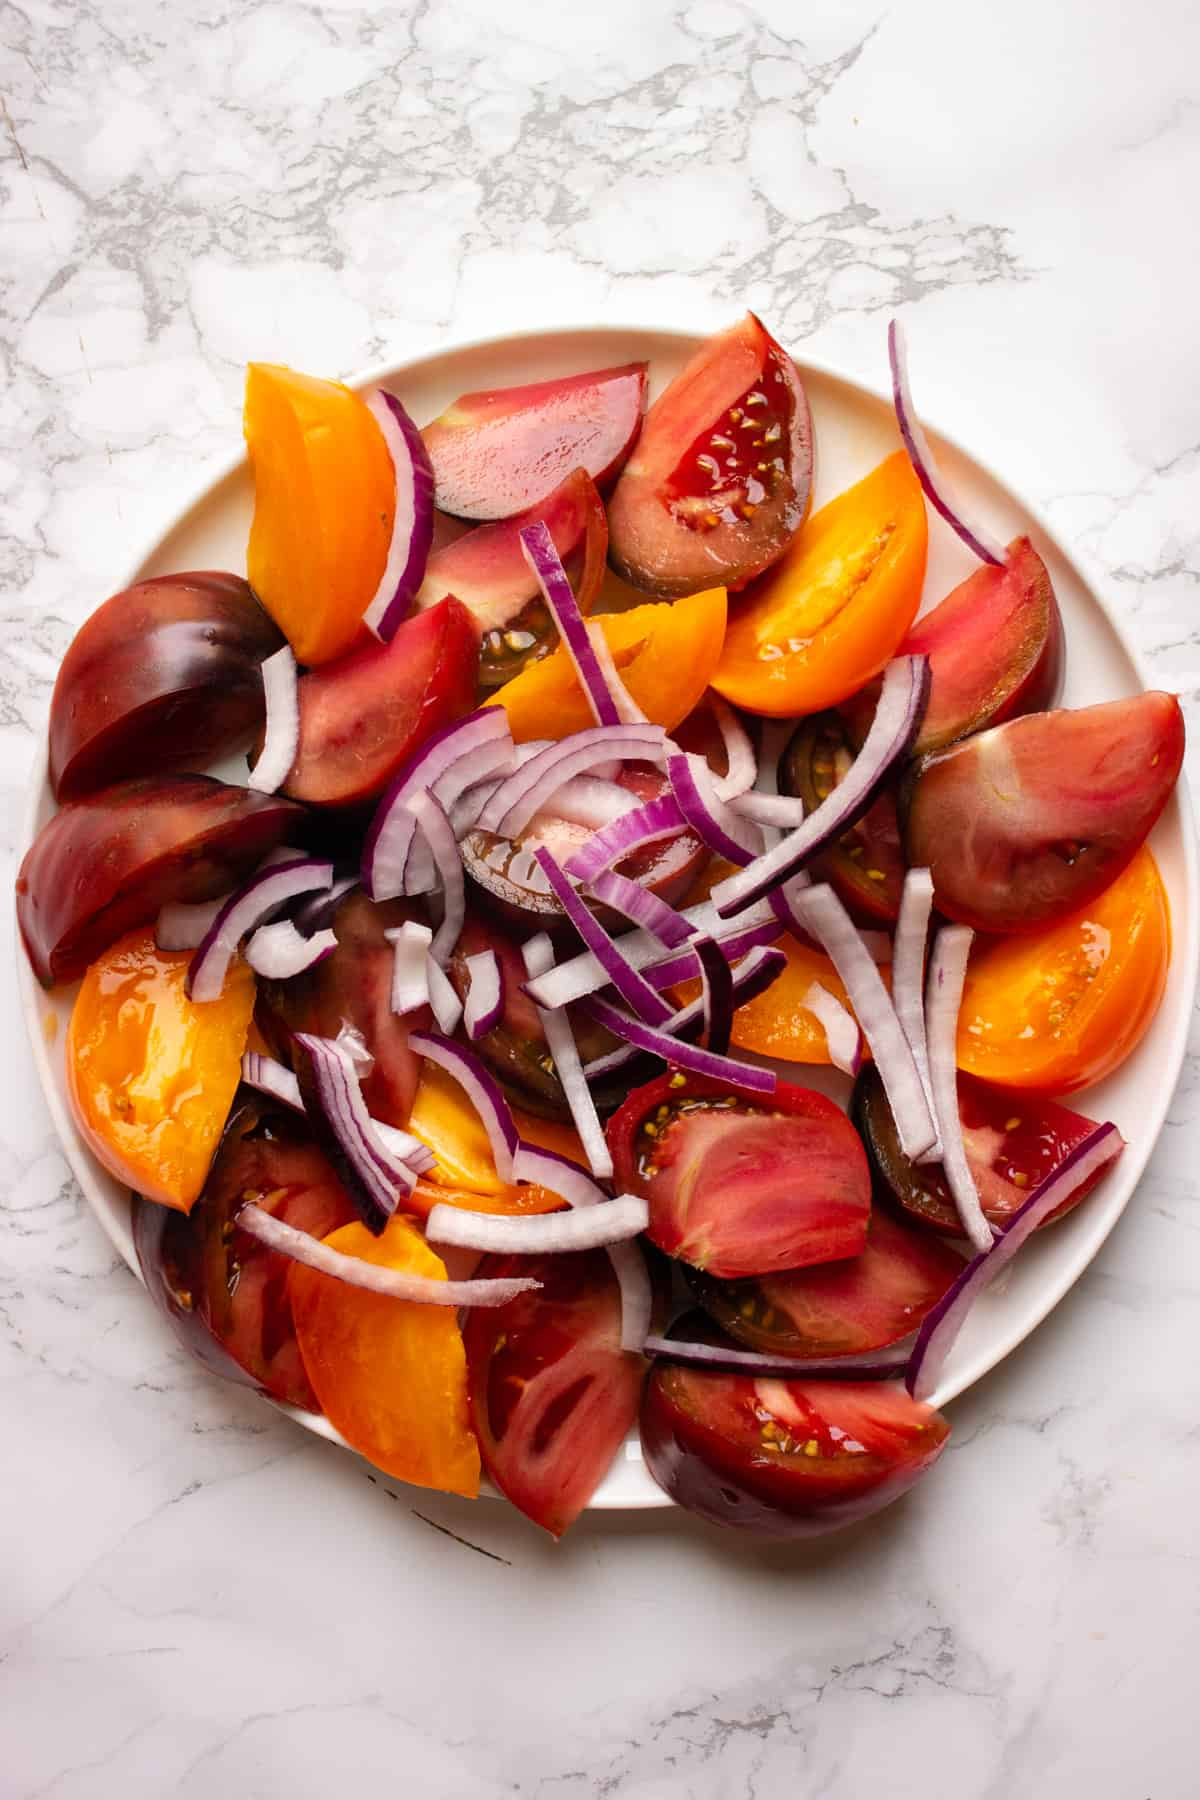 Wedges of heirloom tomatoes with sliced red onion on a plate on a white background